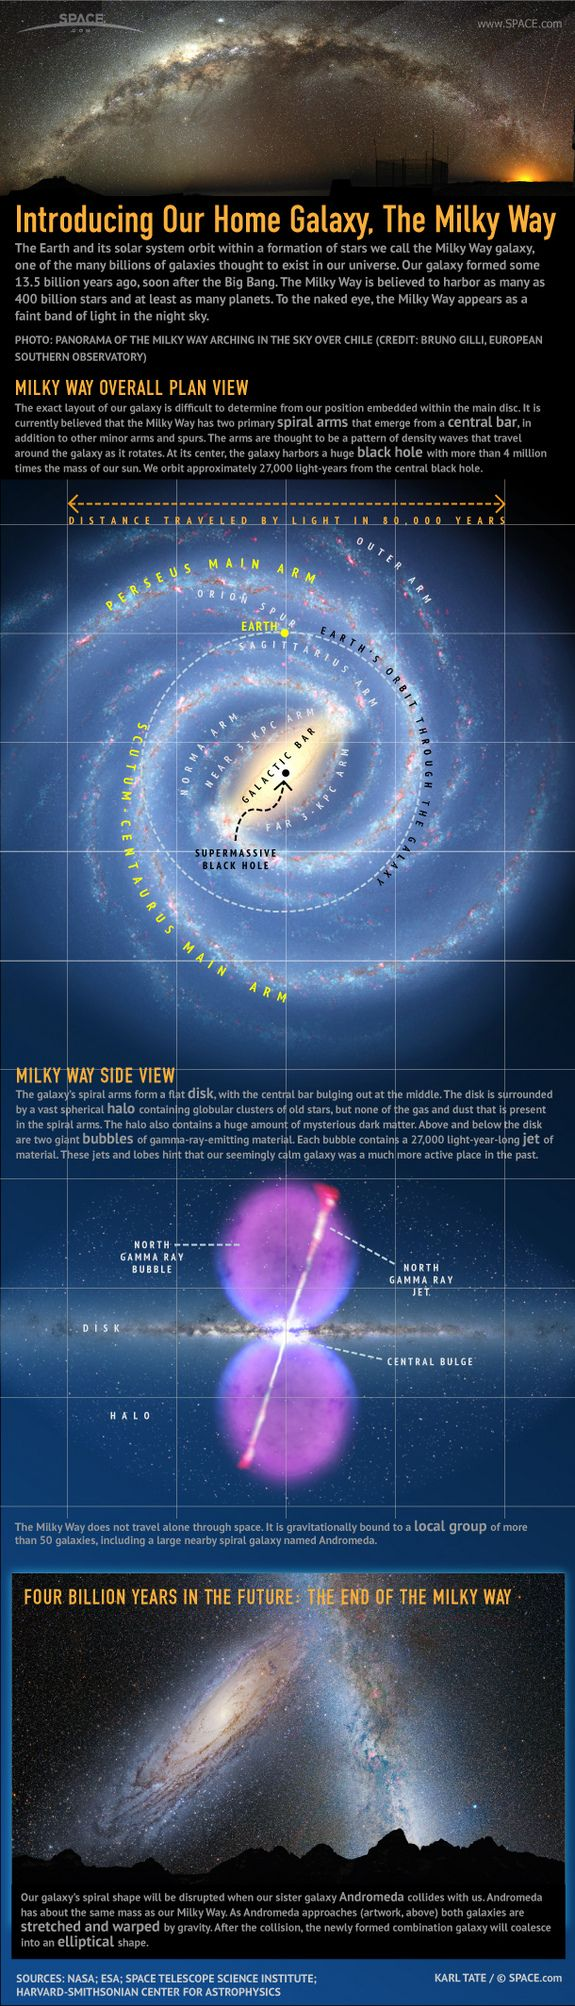 Chart of the Milky Way, click to see full size